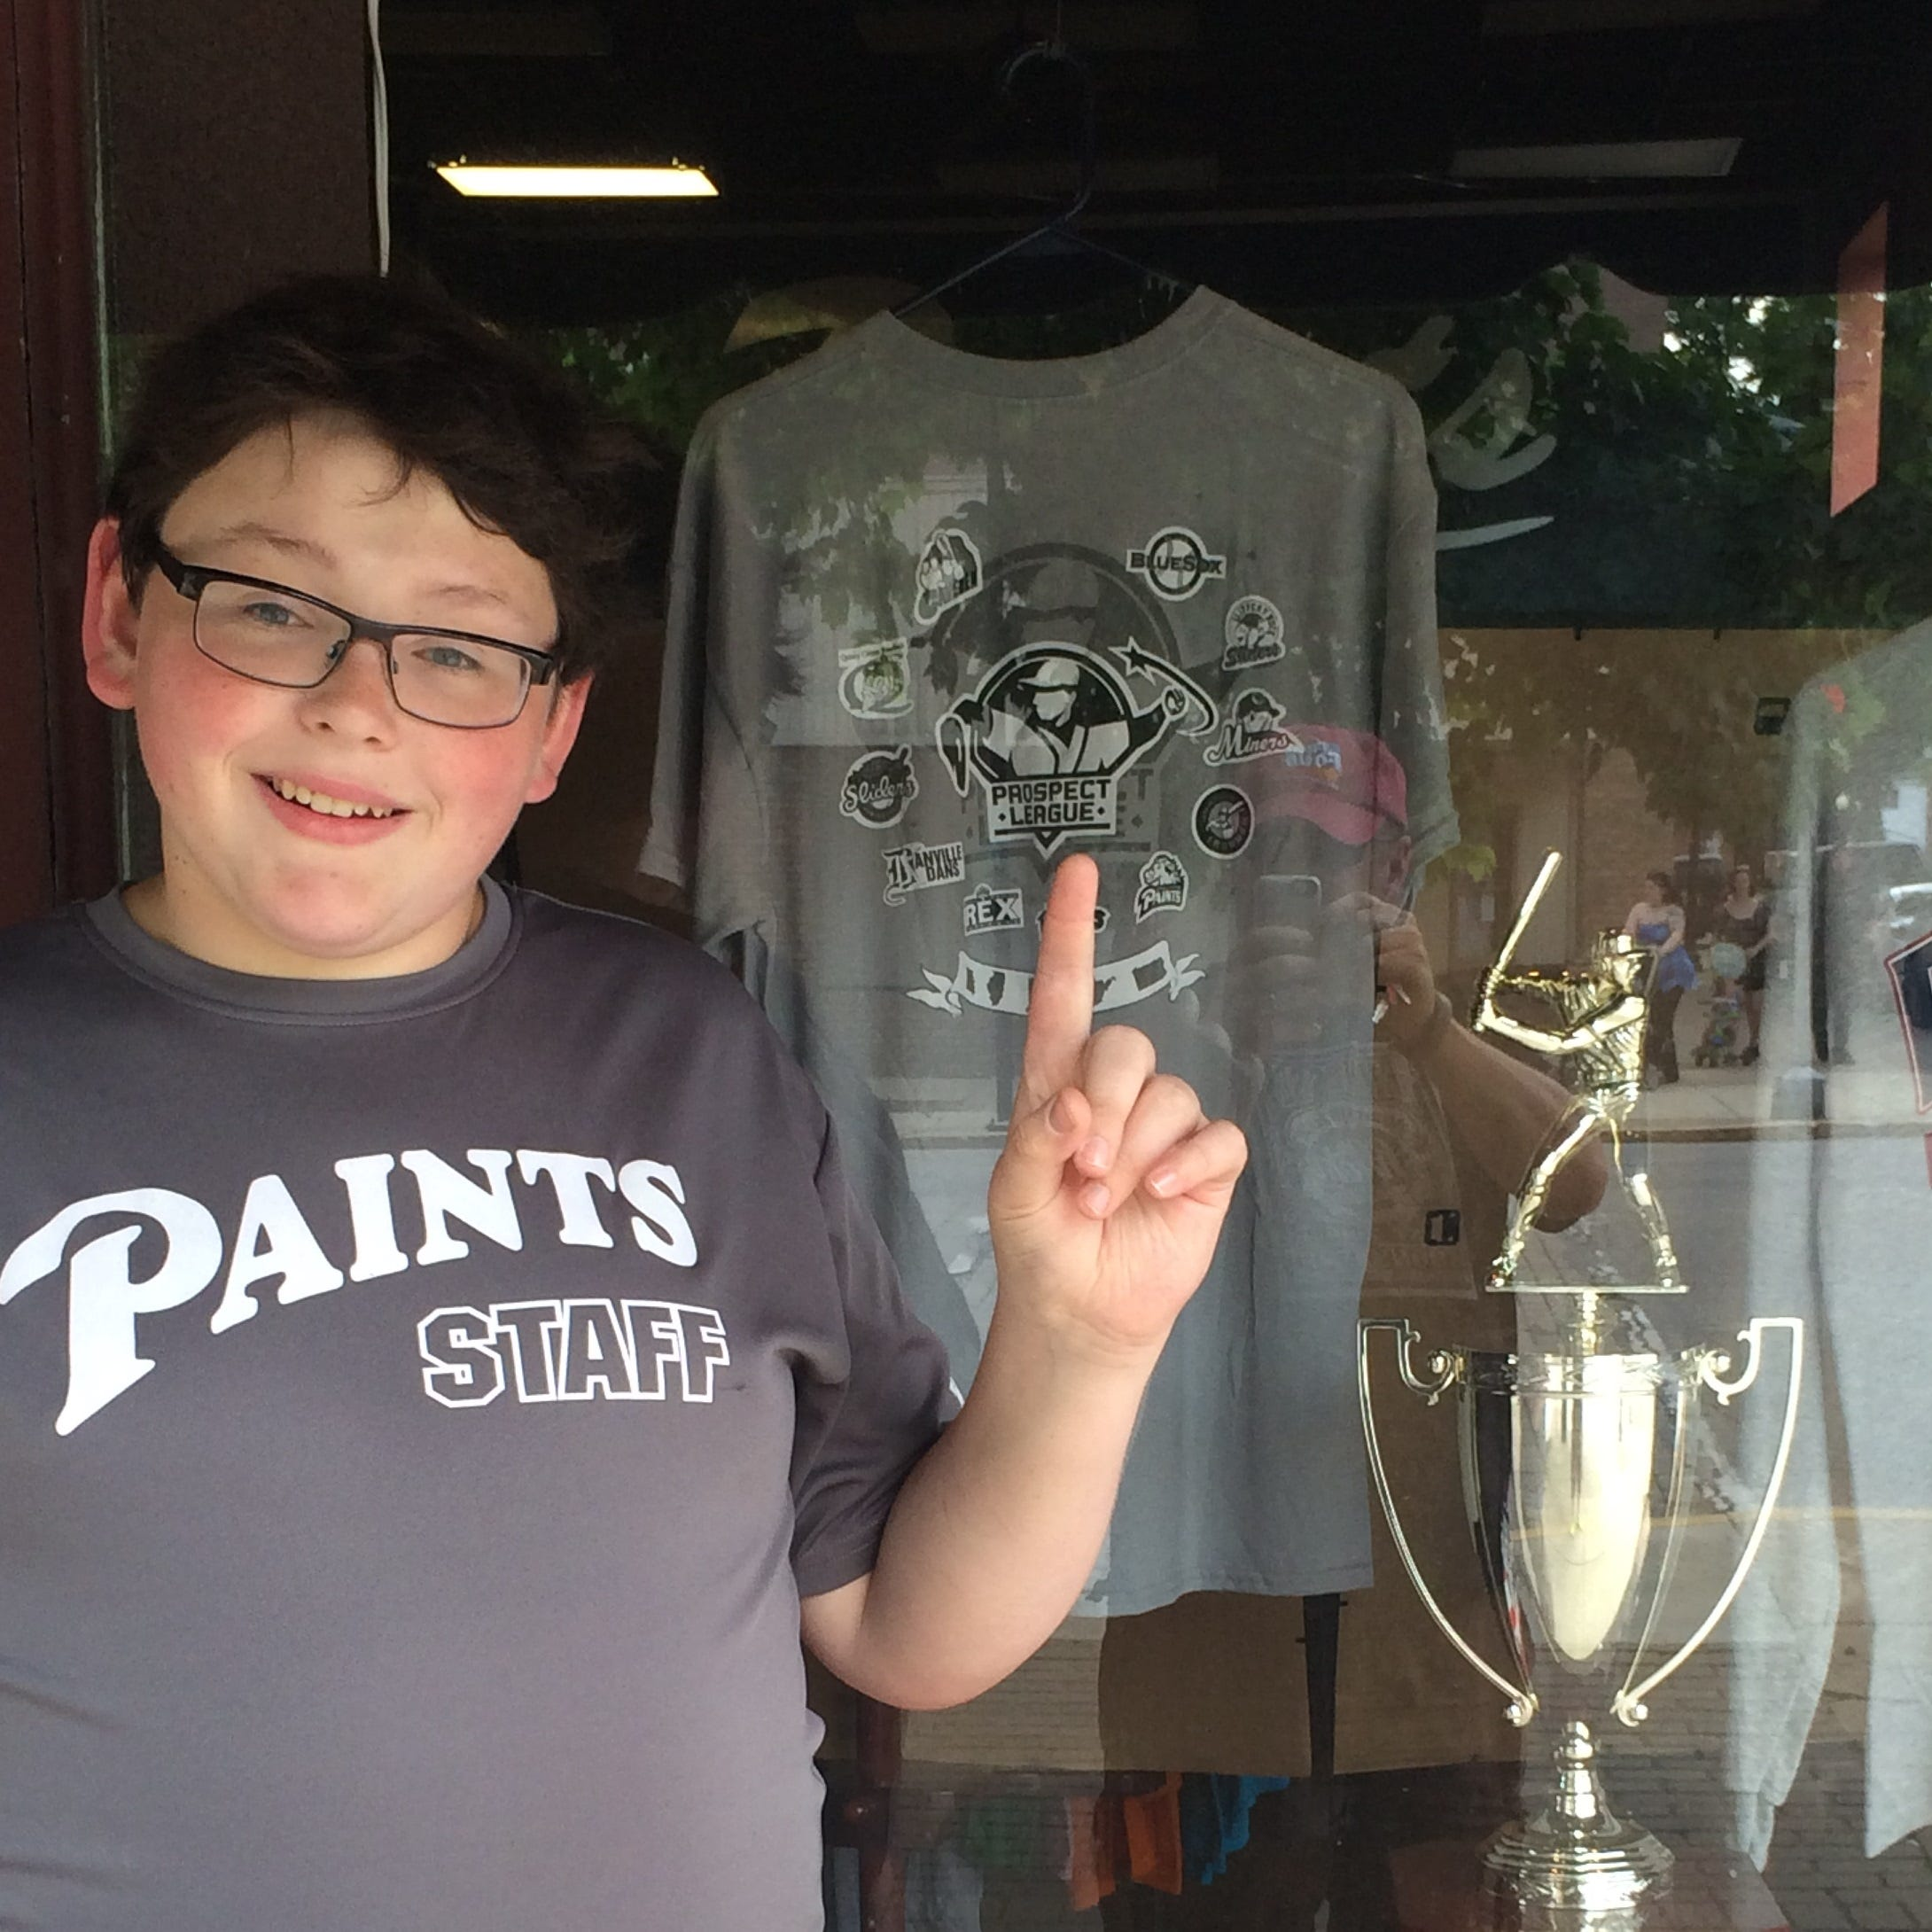 Jackson Fish poses for a picture outside the Chillicothe Paints office in 2015.